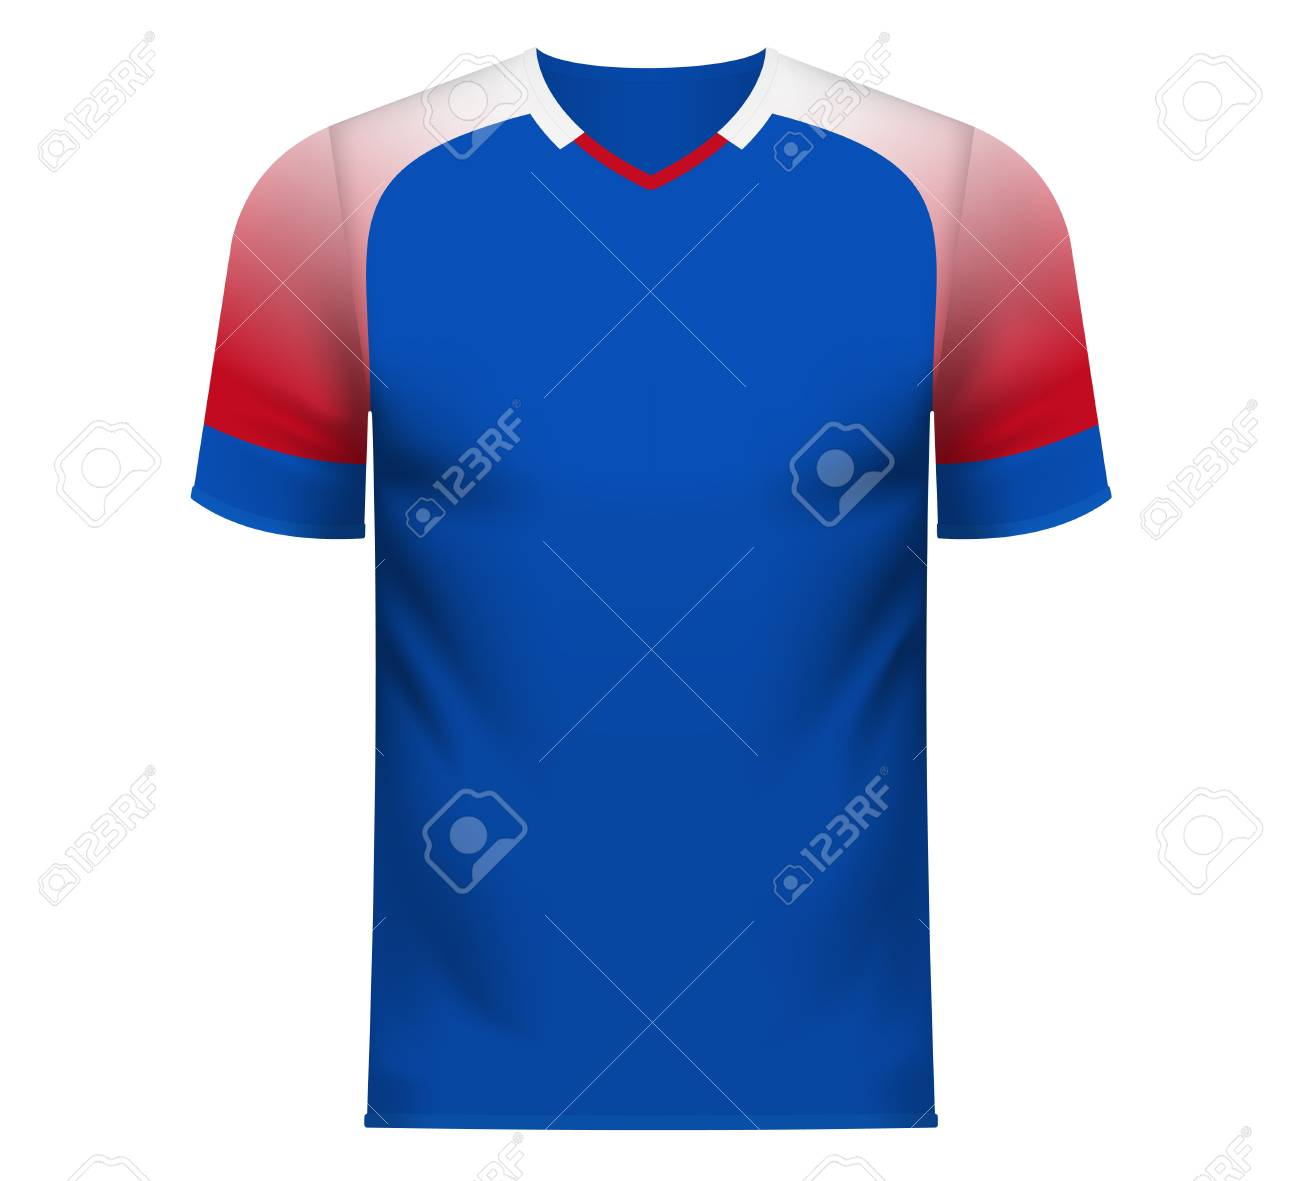 b51e6fbb3c7 Iceland national soccer team shirt in generic country colors for fan apparel.  Stock Vector -